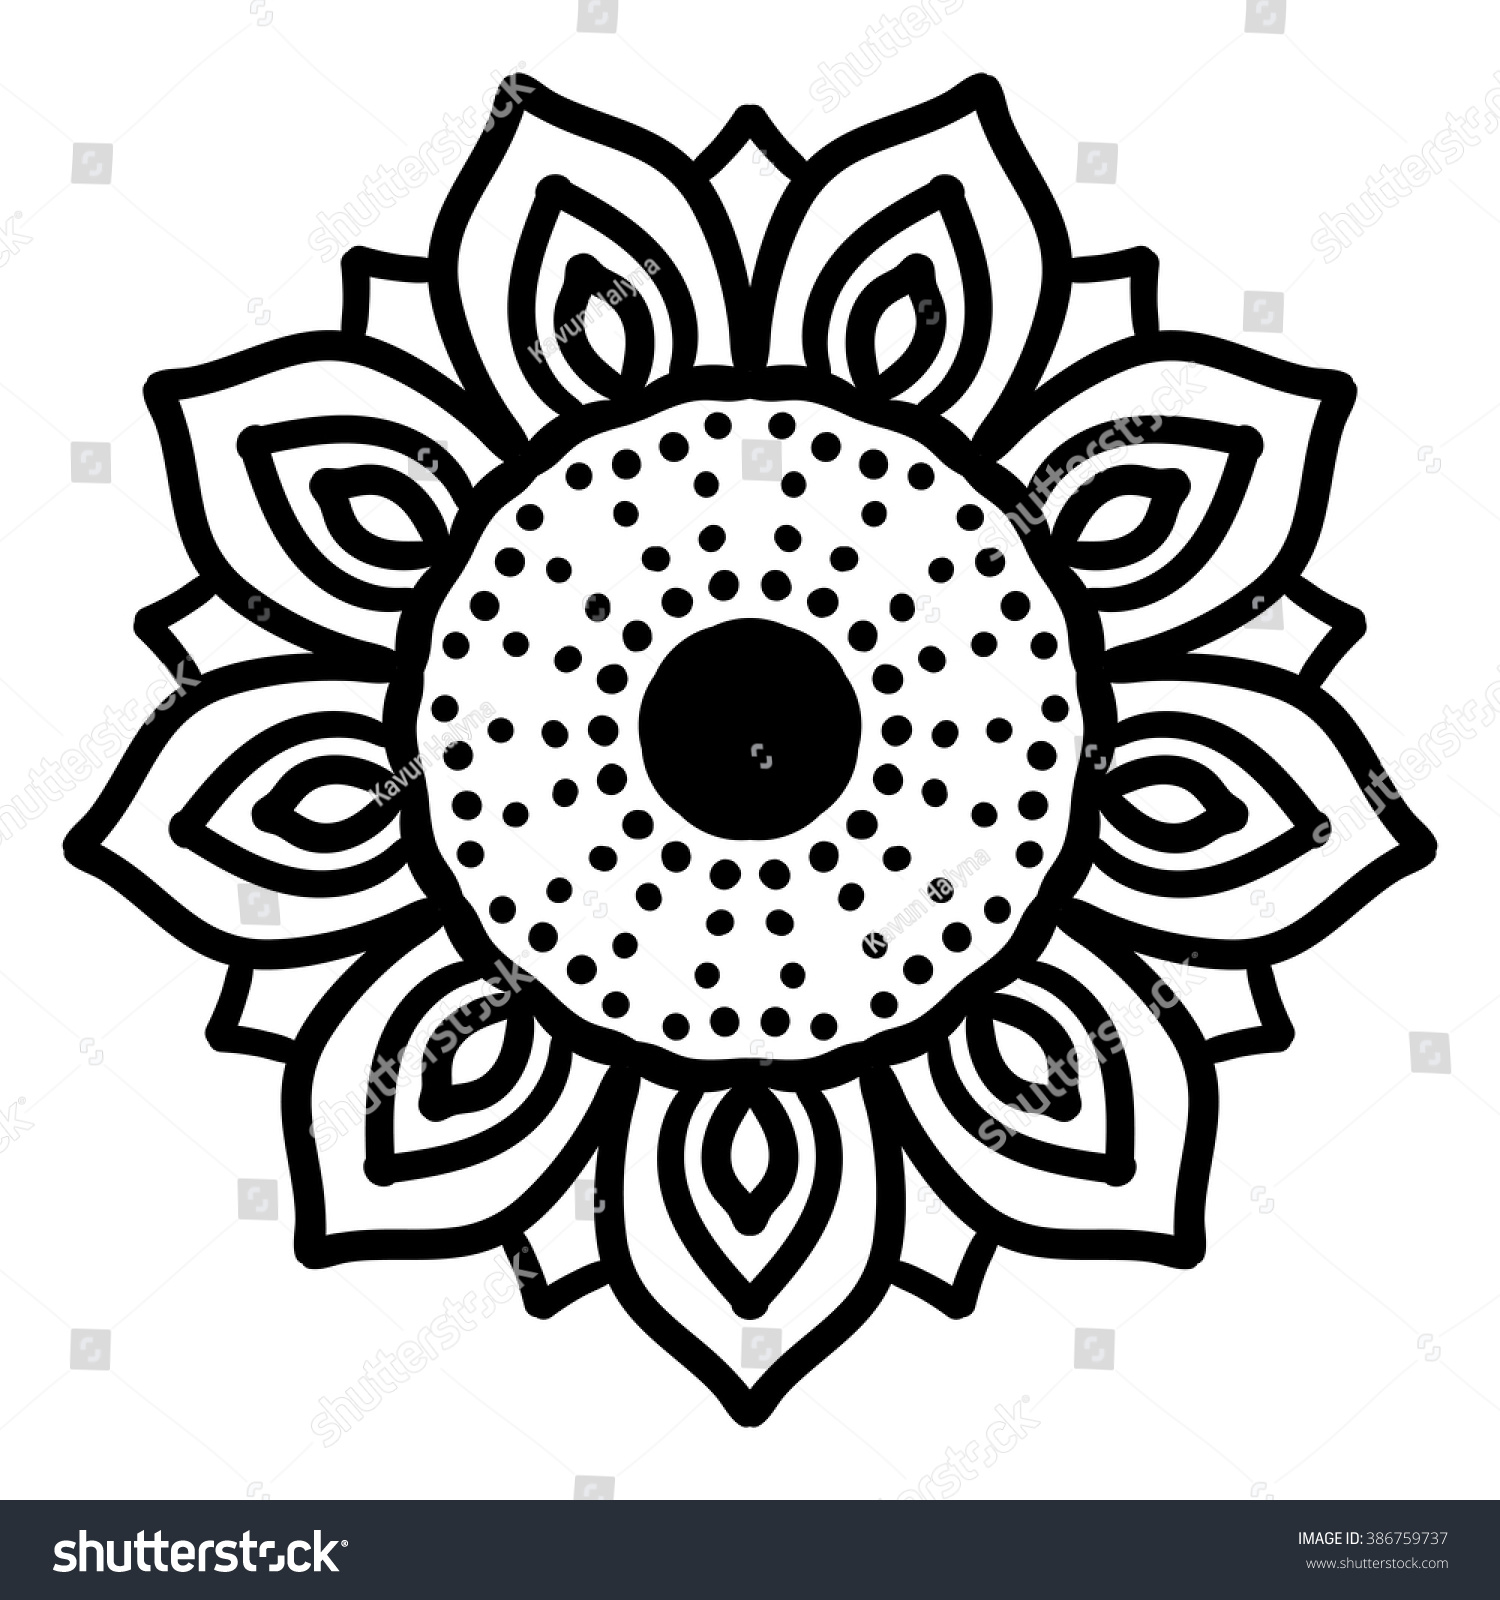 Vector Sunflower Black And White Bohemian Texture Boho Decorative Ornament Mandala Pattern